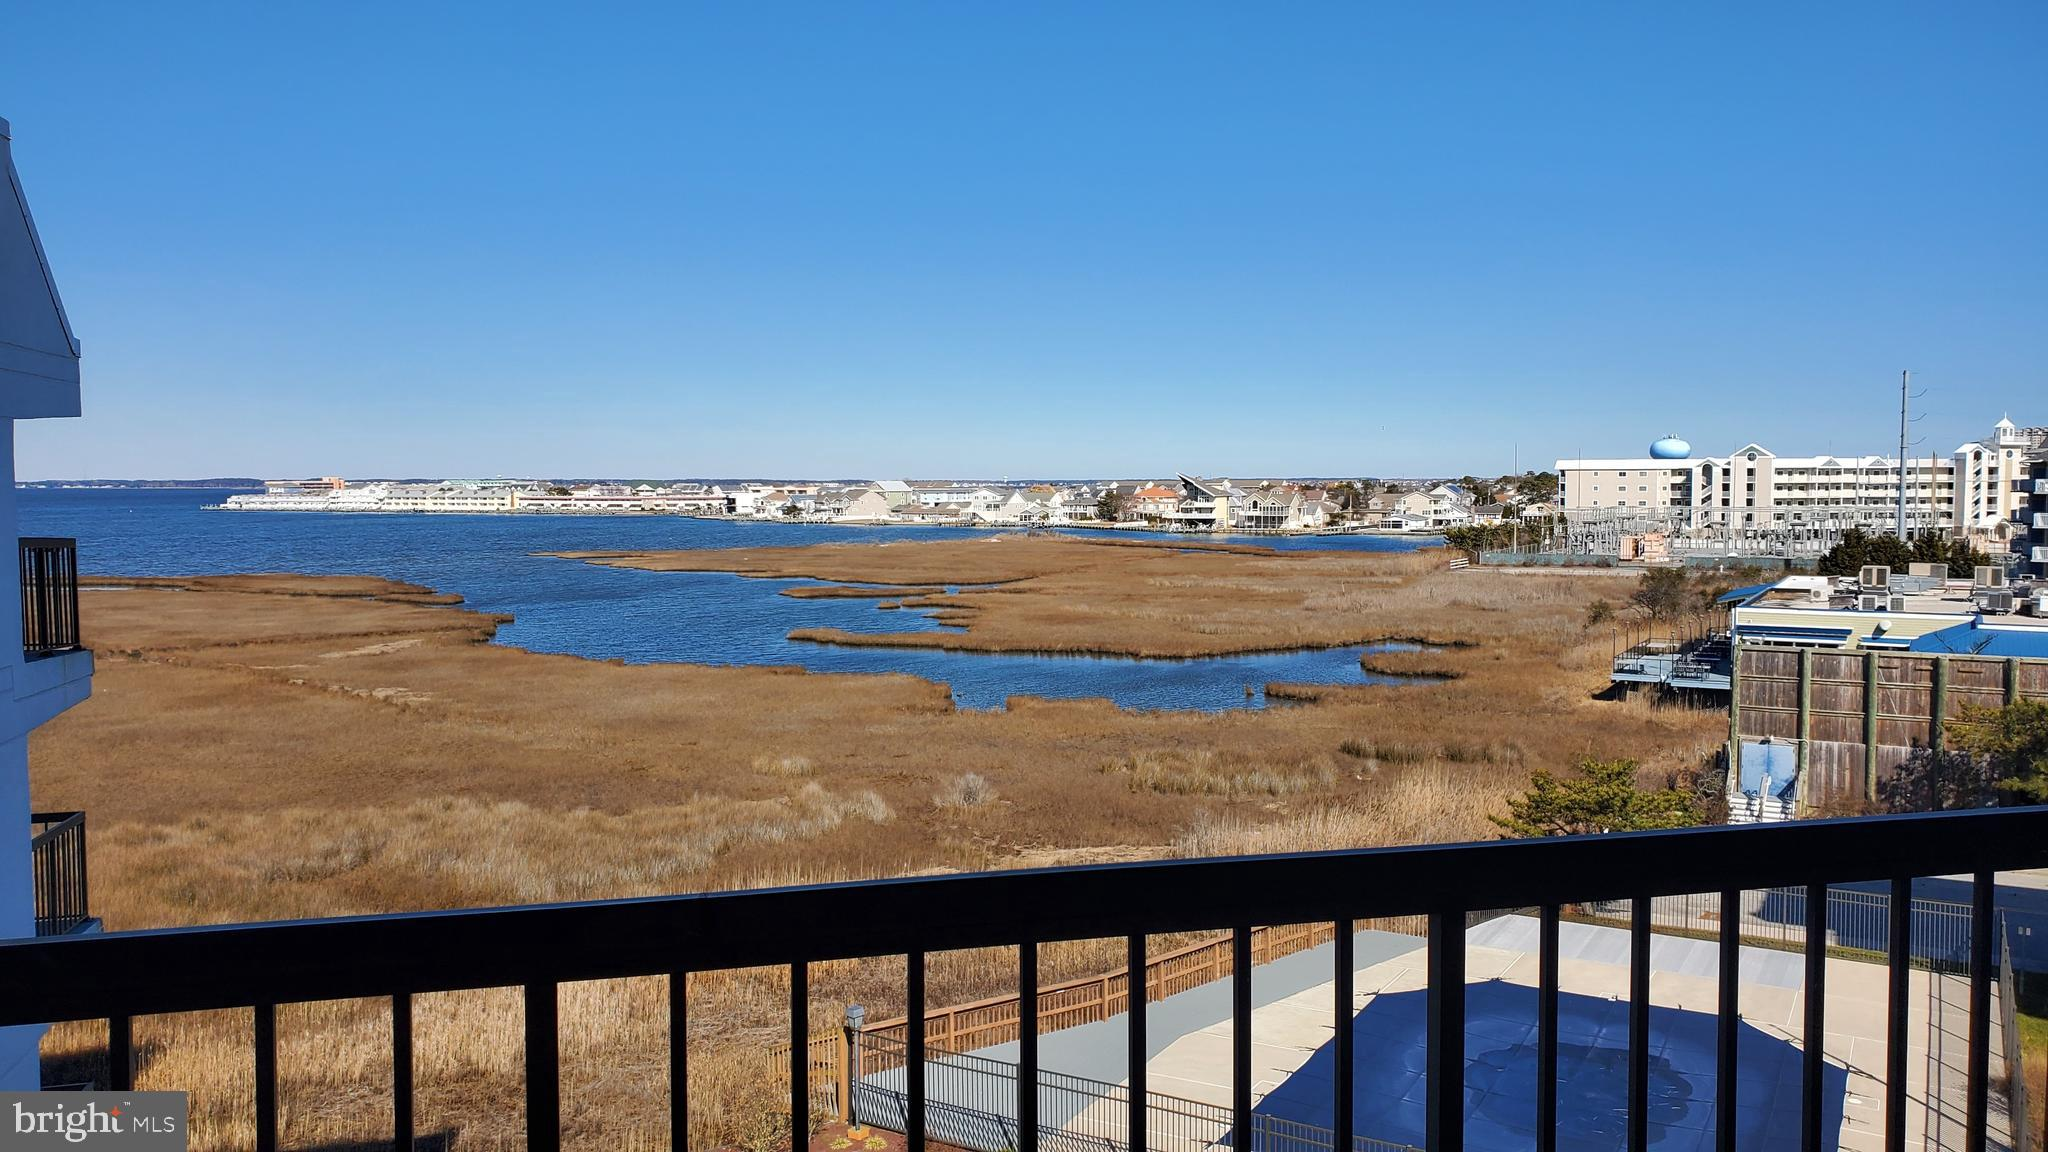 Just Two blocks to beach is this Direct Bayfront condo in a Masonry Building with elevator and pool.  Enjoy amazing sunsets and bay views from your oversized balcony.  Spacious 2-bedroom, 2 bathroom @ 1115 sq ft. features an open floor plan with bay  views from the kitchen, living room and dining room.   The condo is being offered fully furnished with a sleeping  capacity of 11.  All you need is your beach gear! Must honor existing rentals.  6/26 - 7/2 for 2632.00 and 6/6-6/13 for 1924.50.  All future rentals have been blocked due to sale of unit.